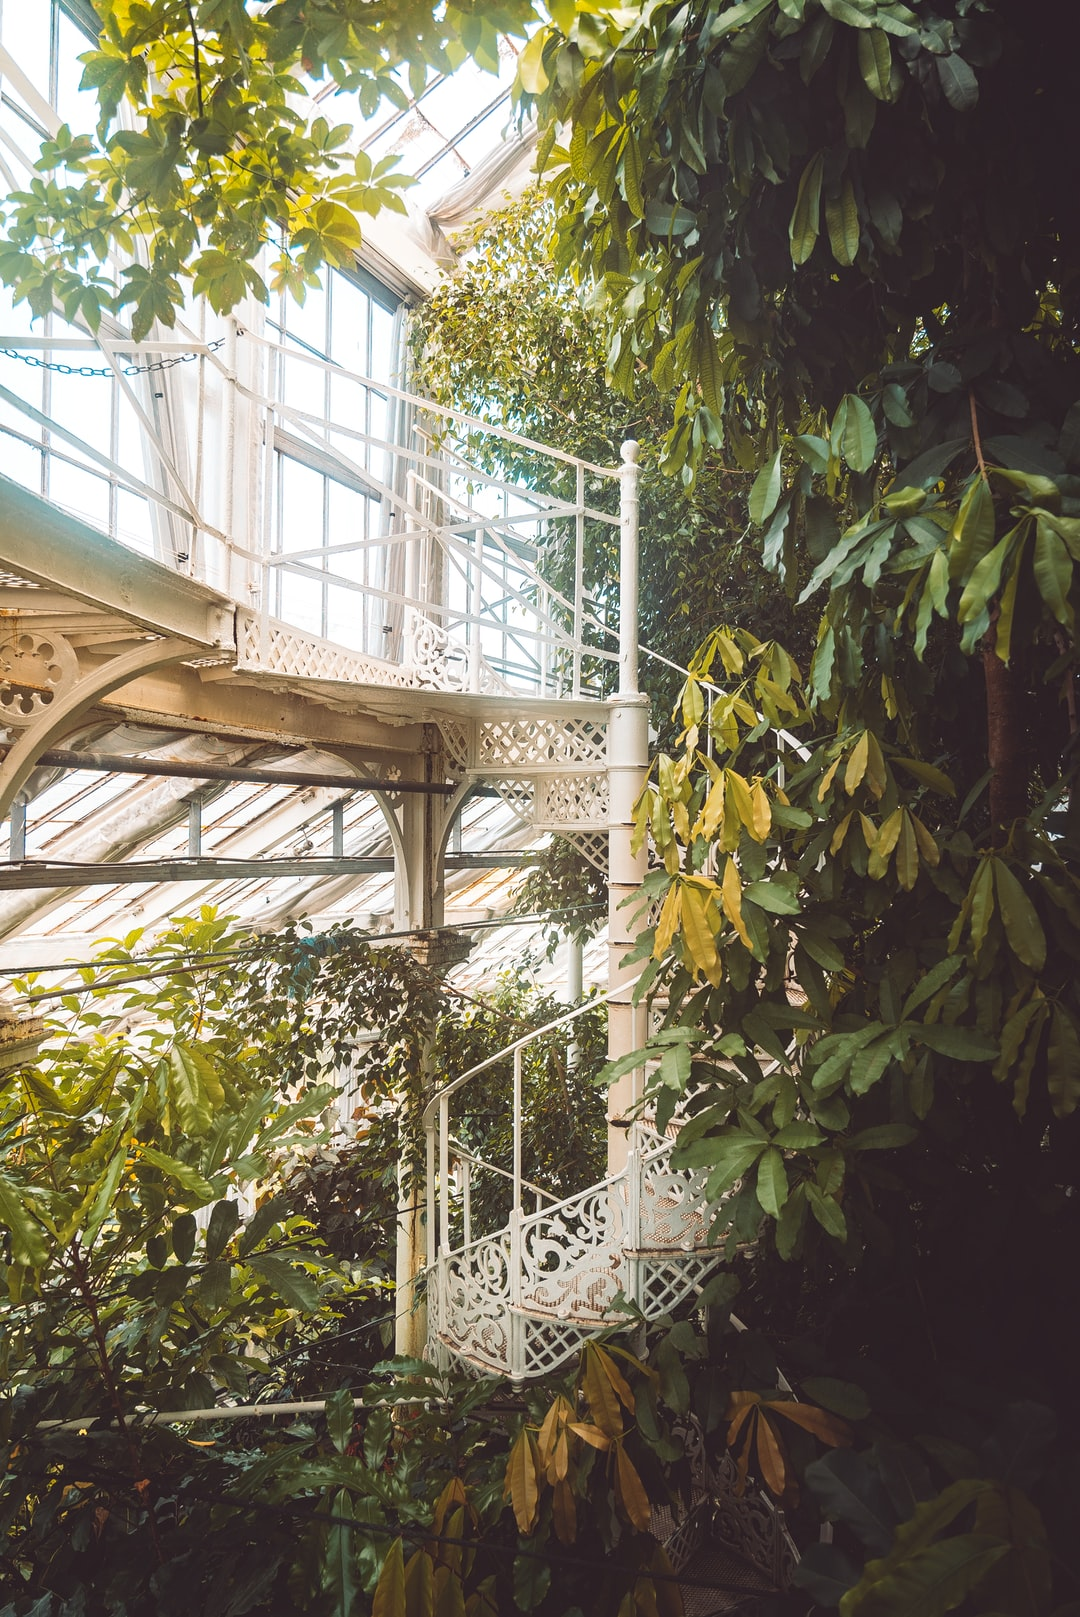 An old, hidden spiral staircase among vines, palms and exotic plants. This exotic getaway can be found in no other place than within the Palm House of the Botanical Garden in Copenhagen.